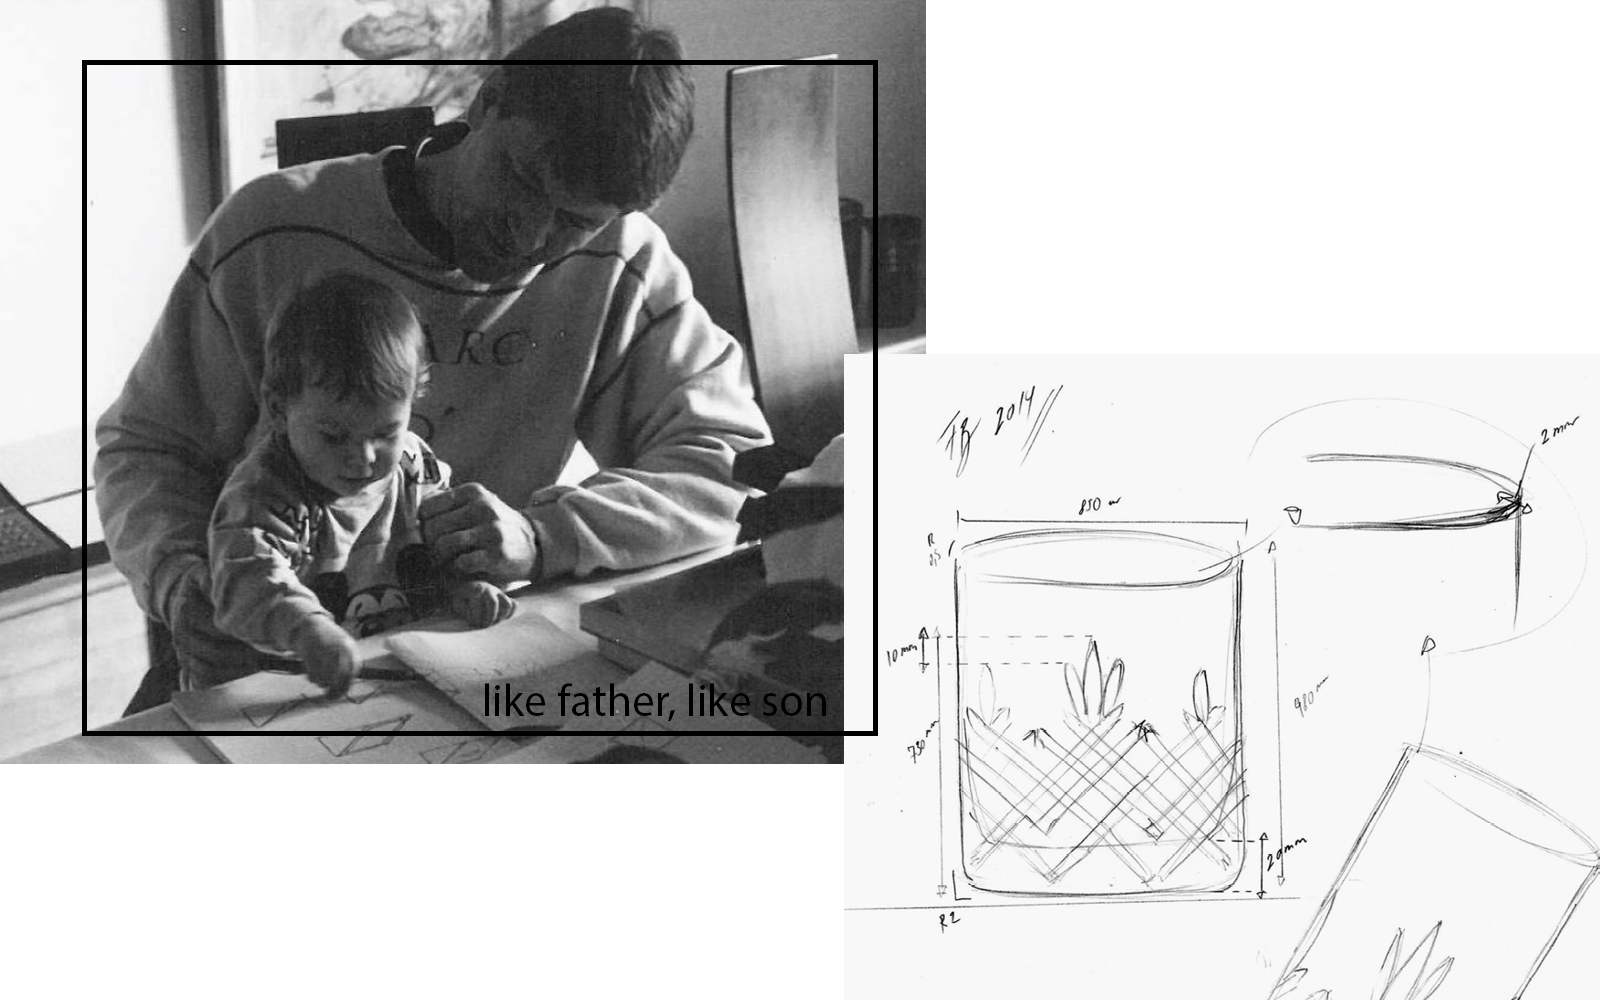 Erik Bagger sitting with his son Frederik Bagger on his lap at a desk, sketching. A sketch of Crispy Lowball